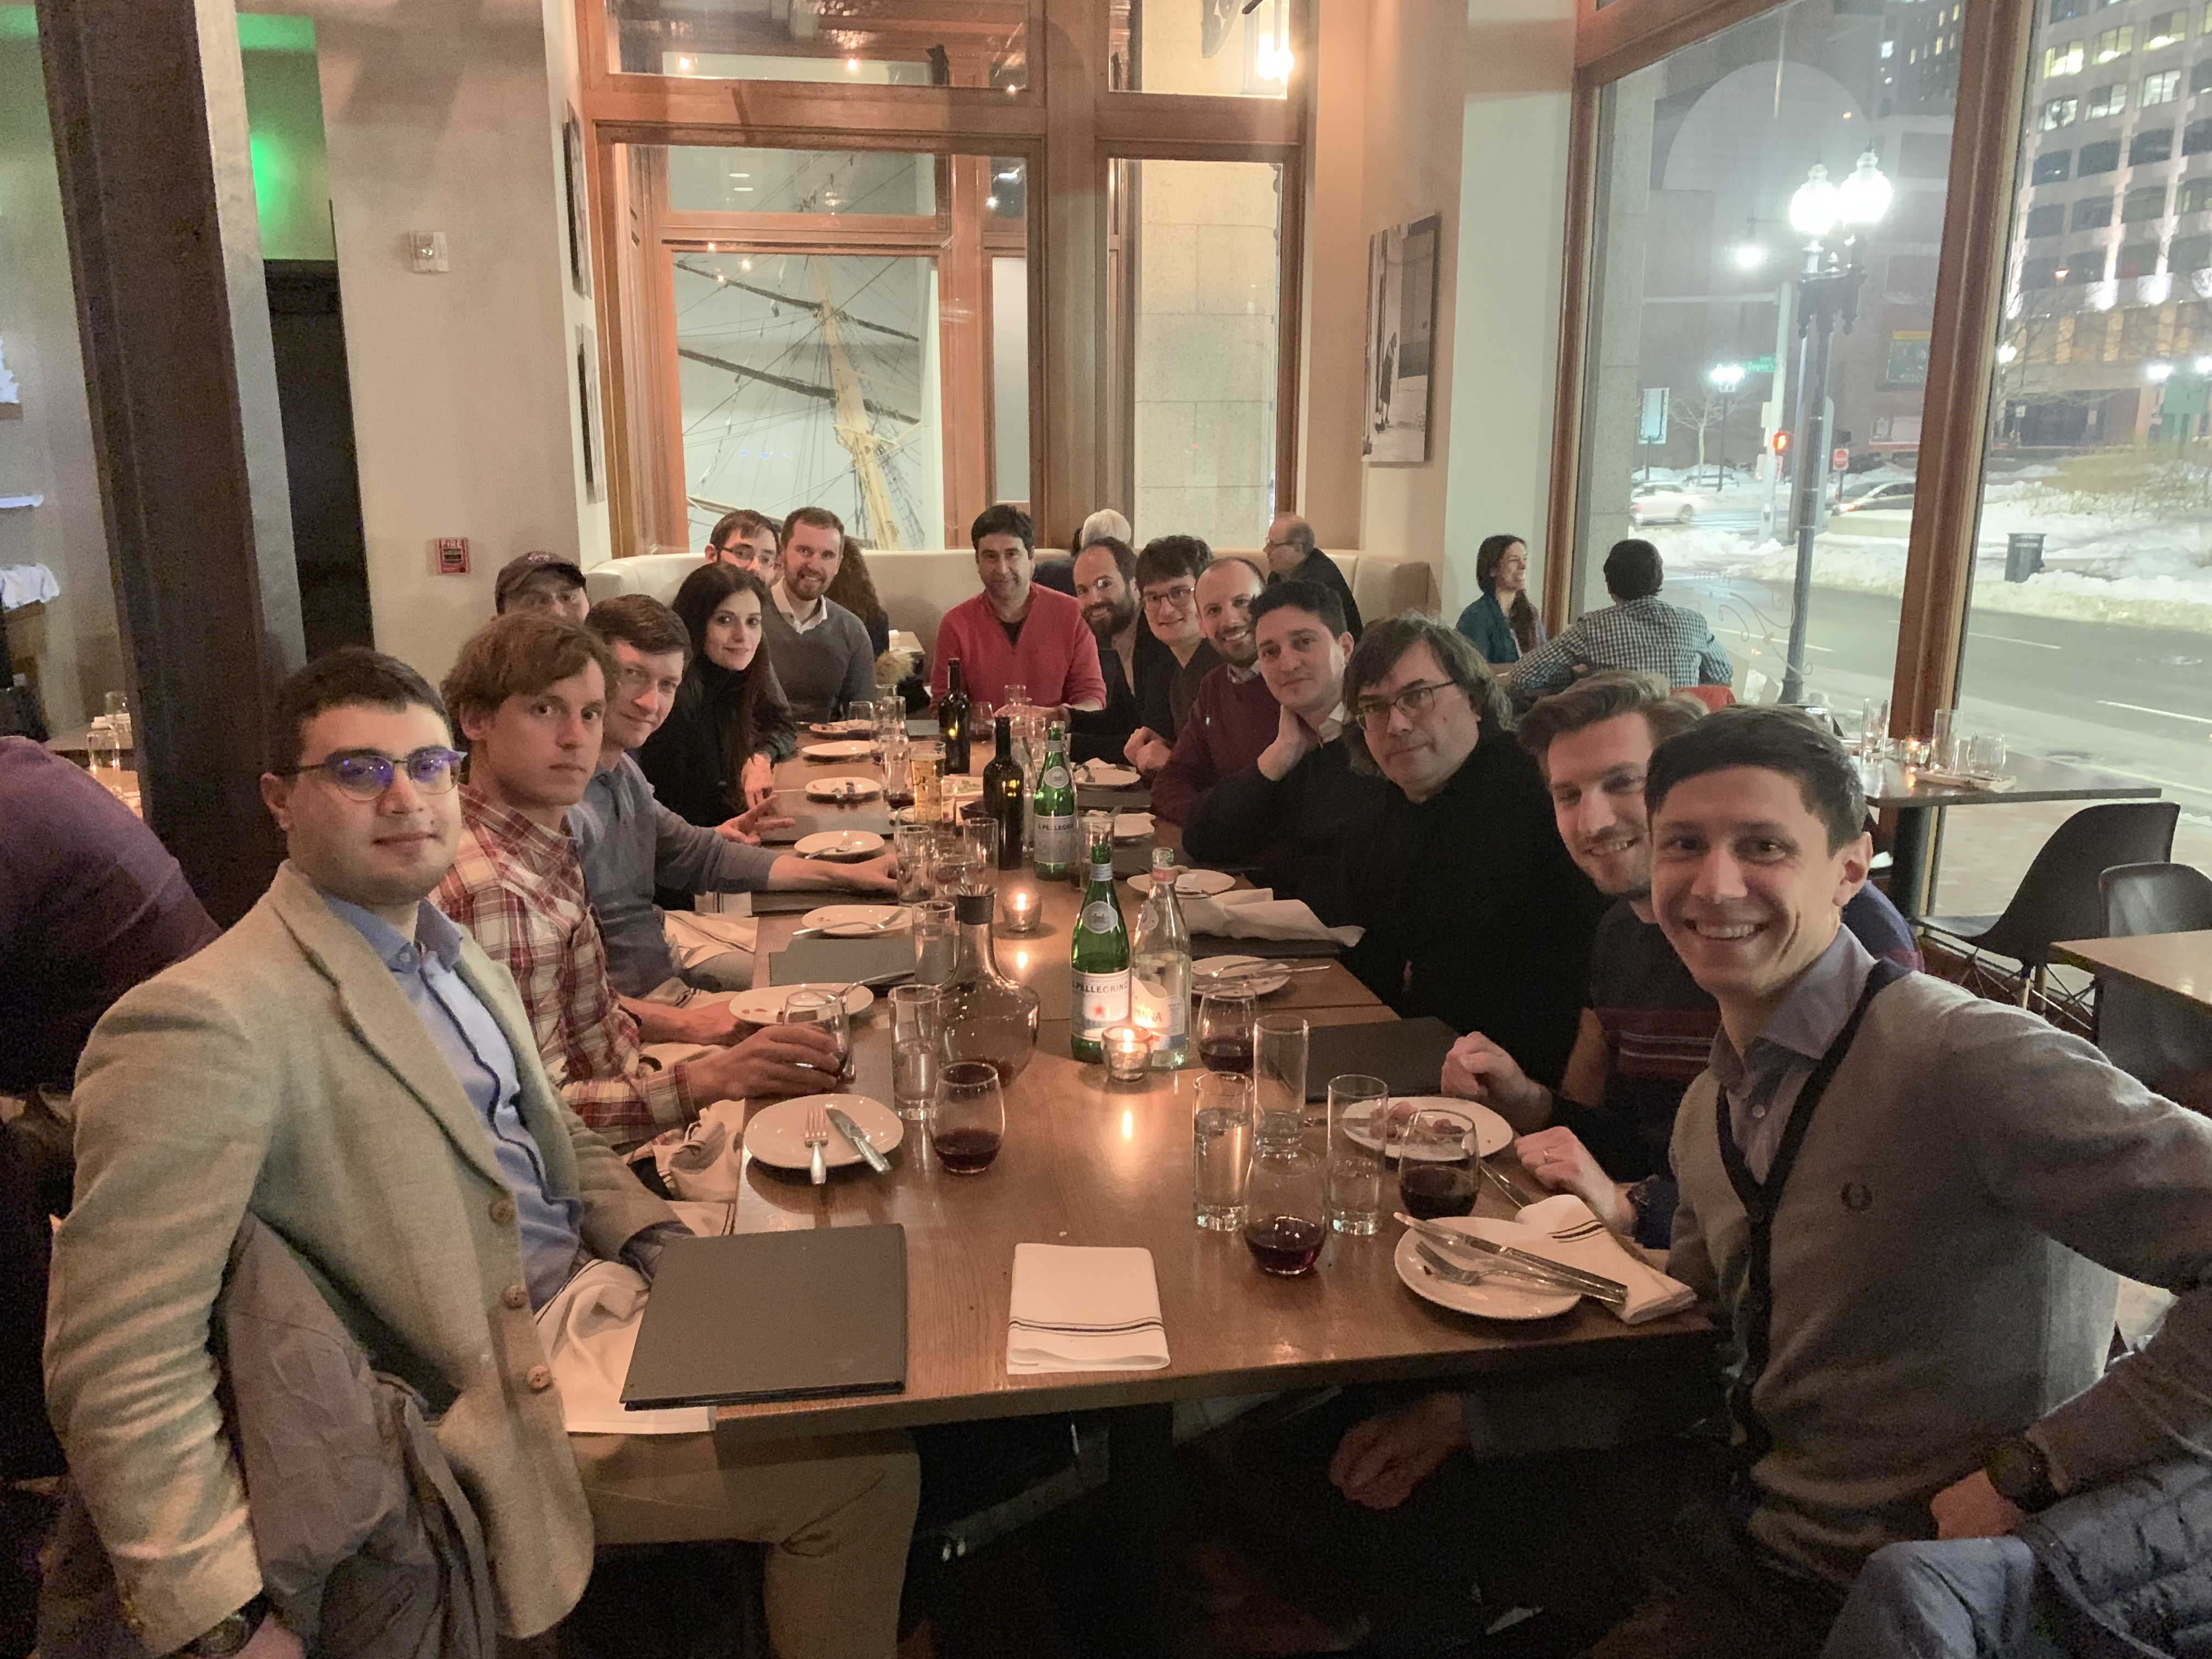 Quasiamore/THEOS group reunion, Boston, APS March Meeting 2019